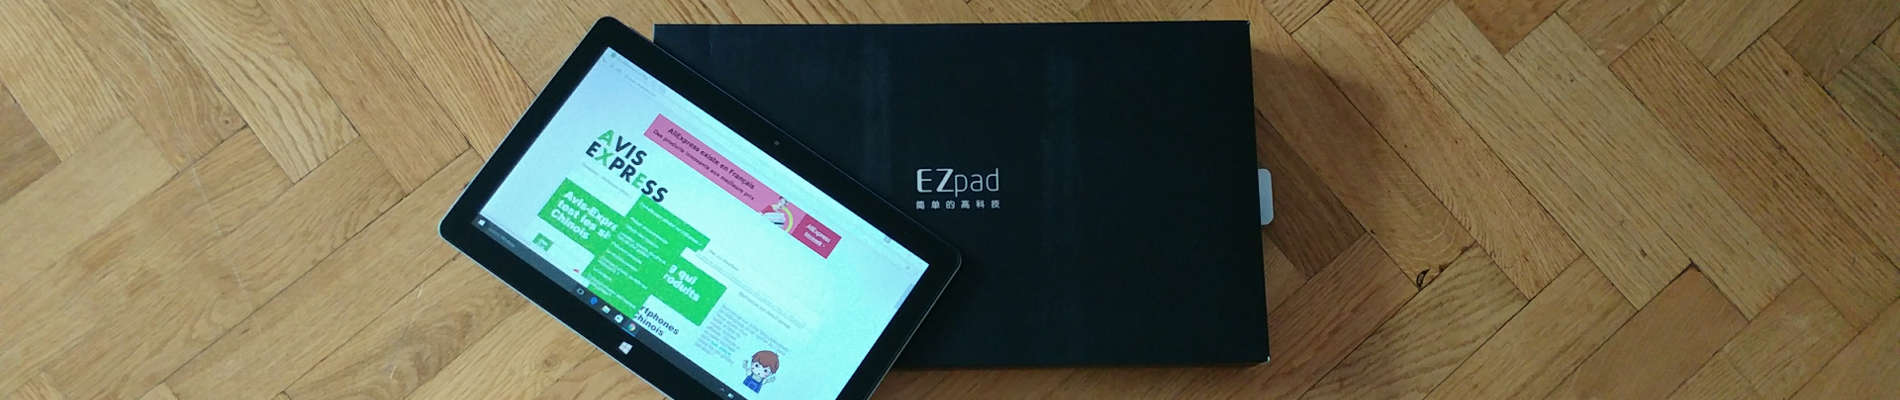 Jumper EZpad 6 - Photo de couverture